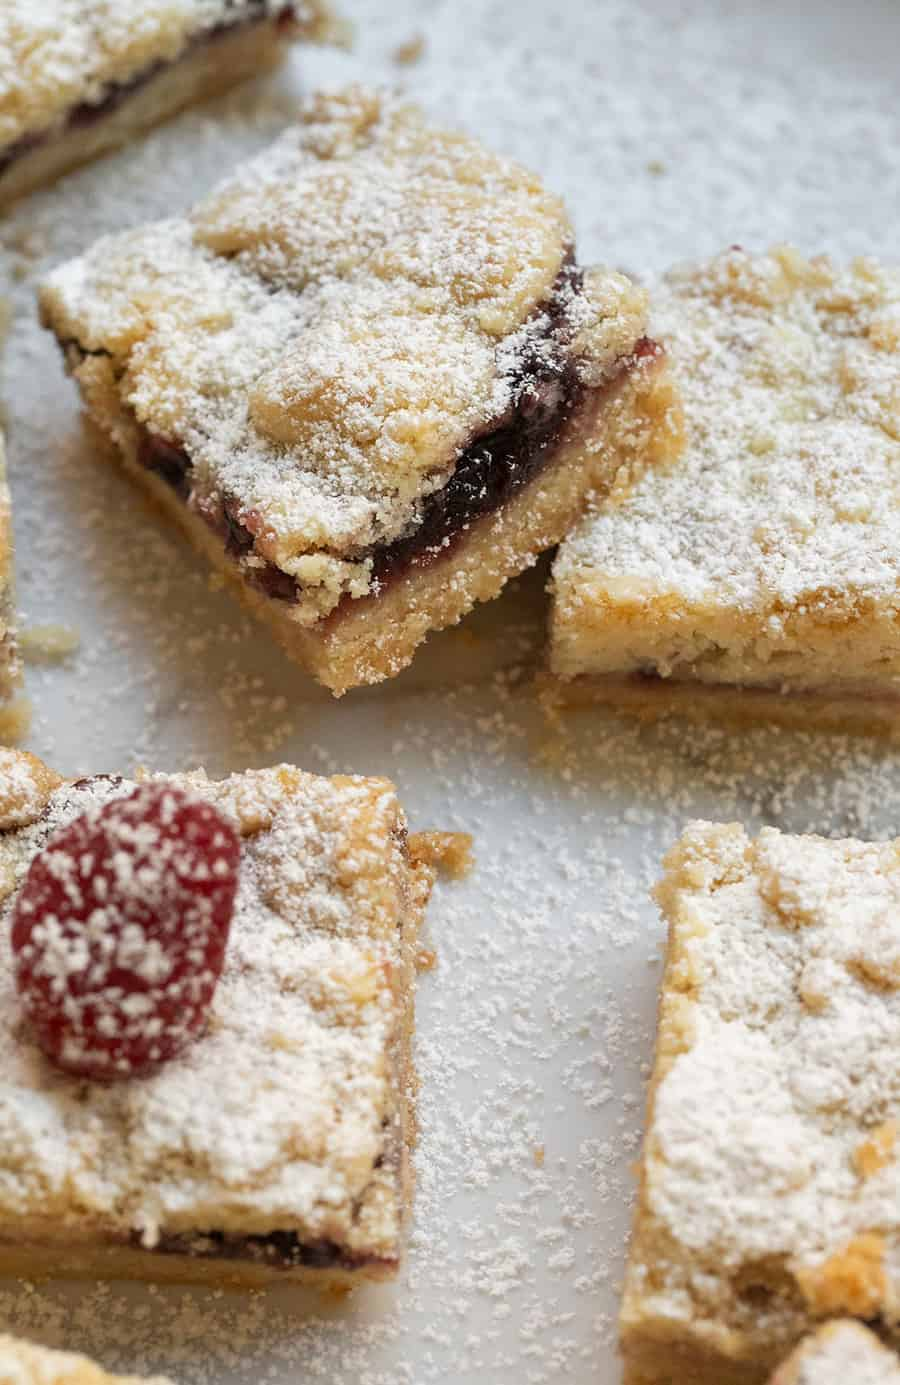 Shortbread cookie crumble bars with raspberry preserves.